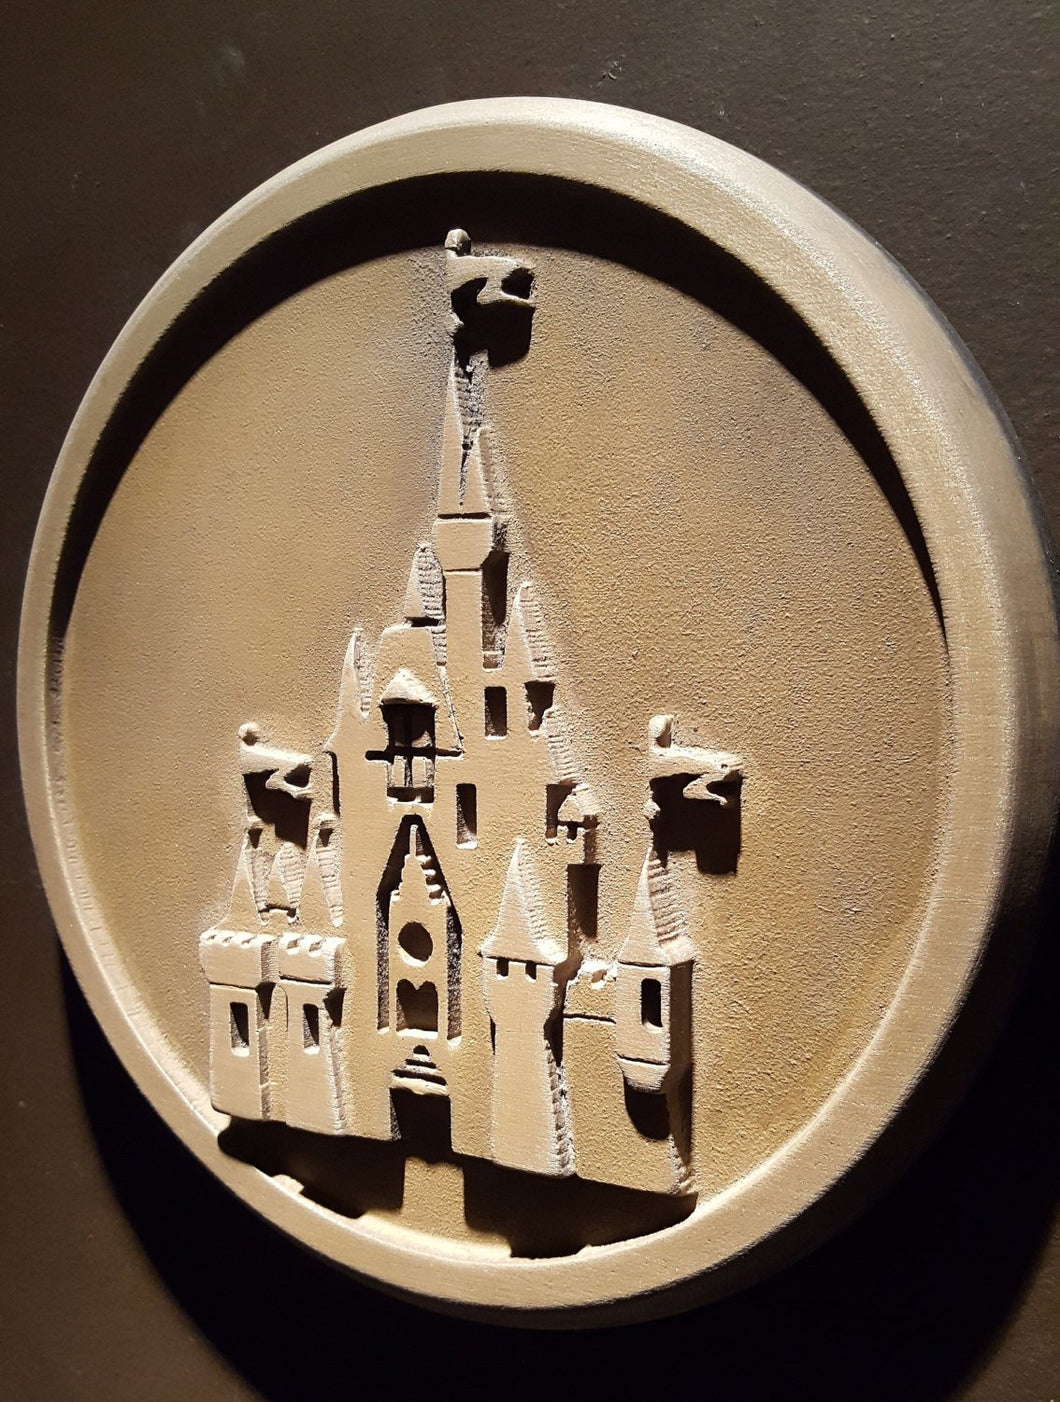 Disney World Magic Kingdom Gateway plaque replica unaged finish